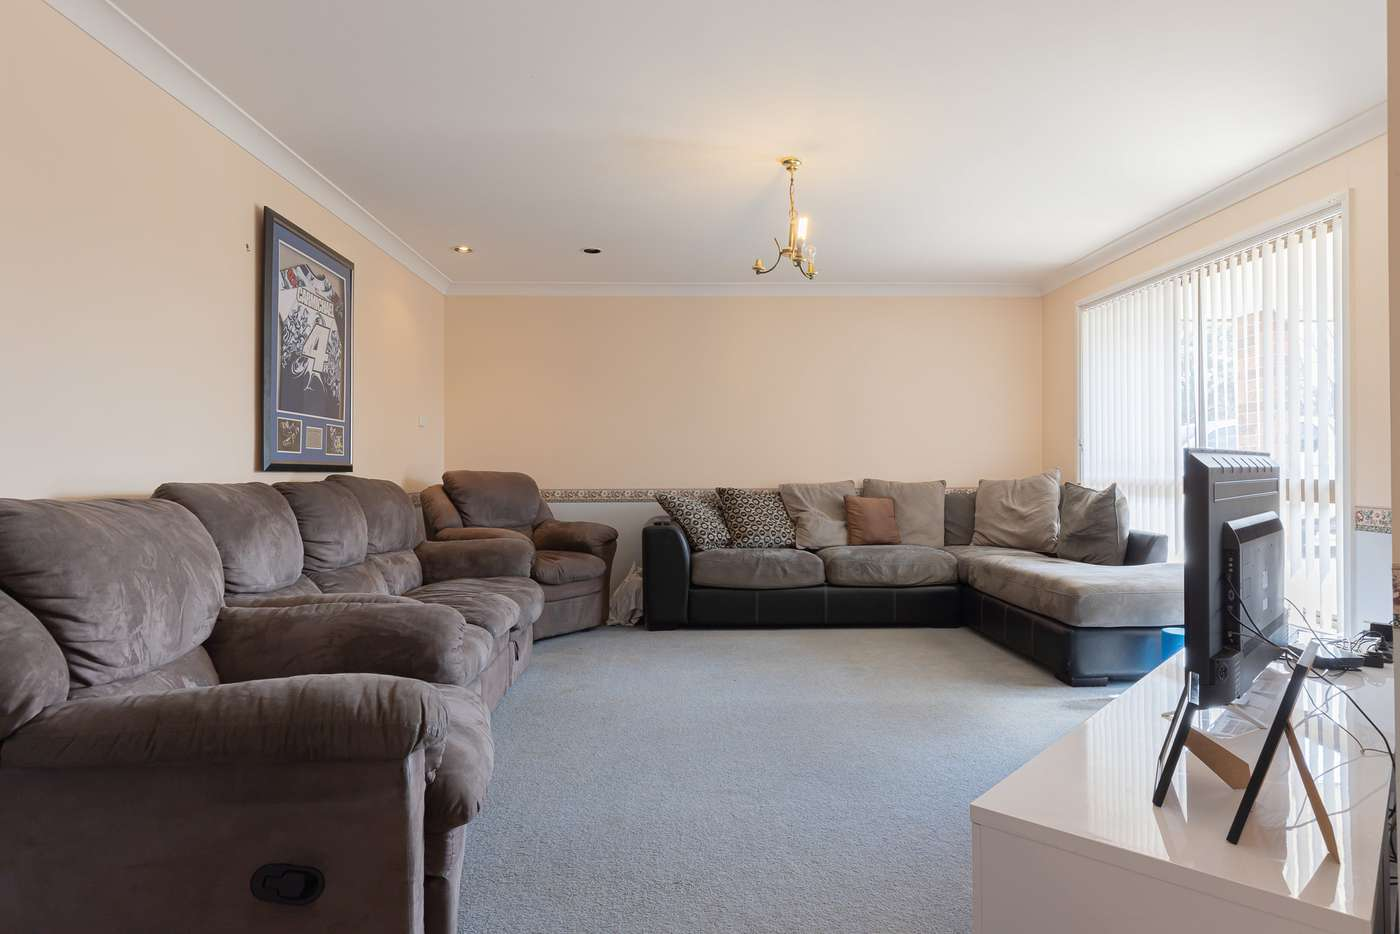 Sixth view of Homely house listing, 11 Turtle Street, Denman NSW 2328